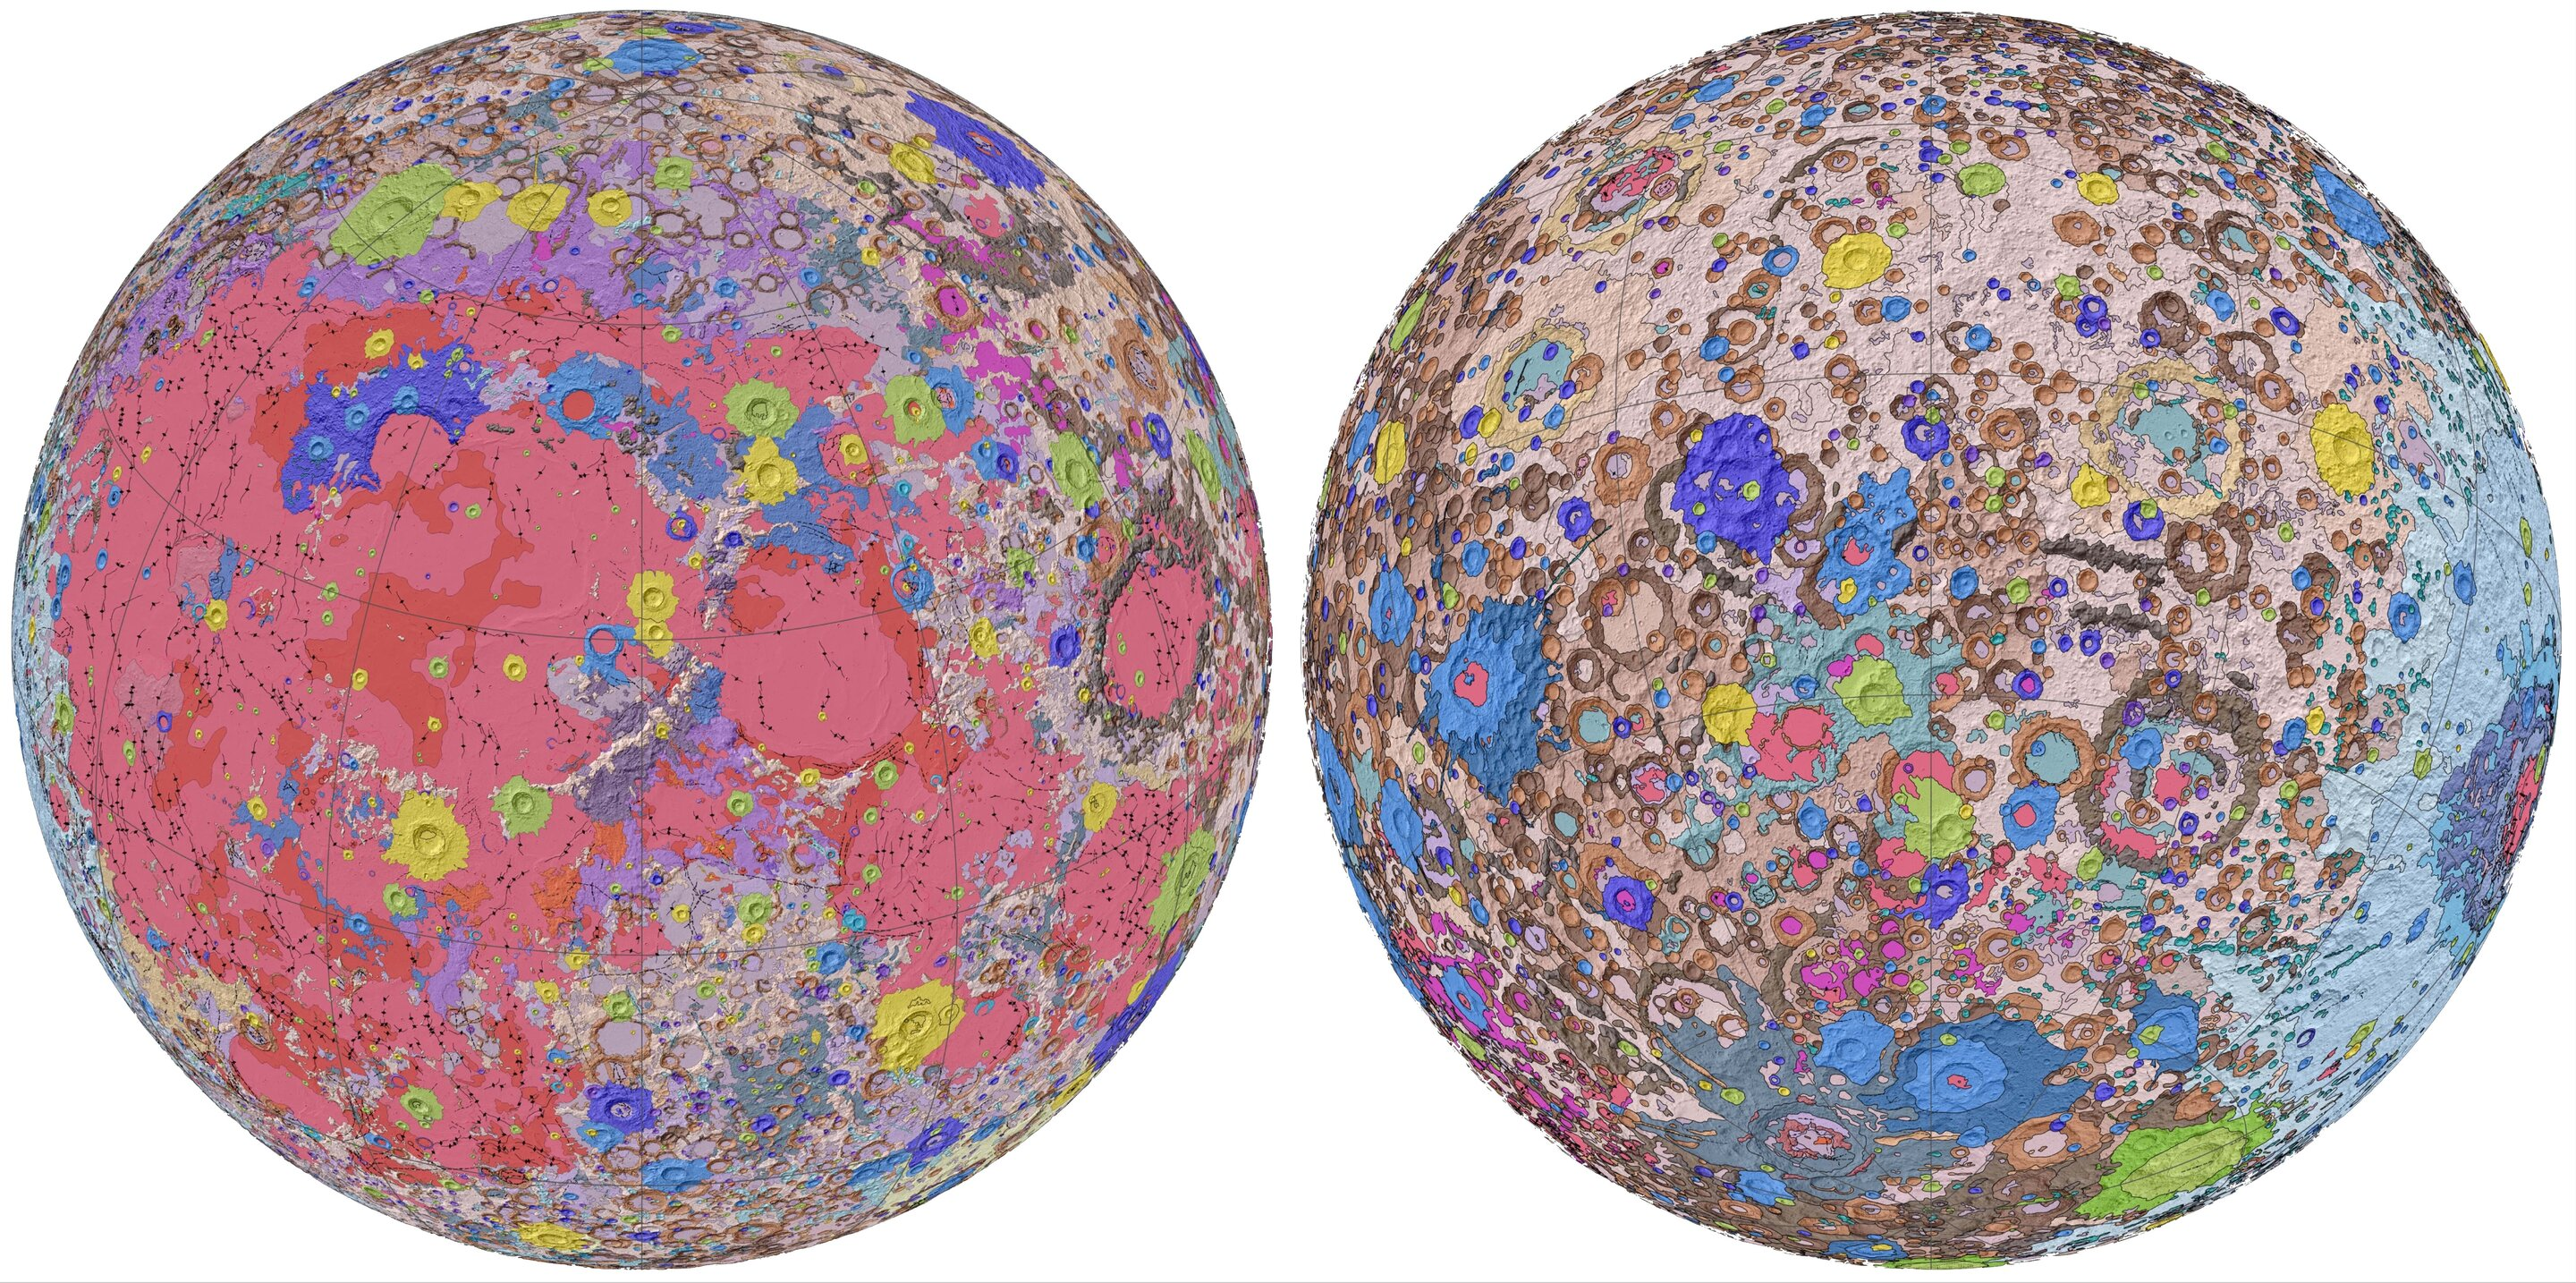 USGS releases first-ever comprehensive geologic map of the Moon thumbnail